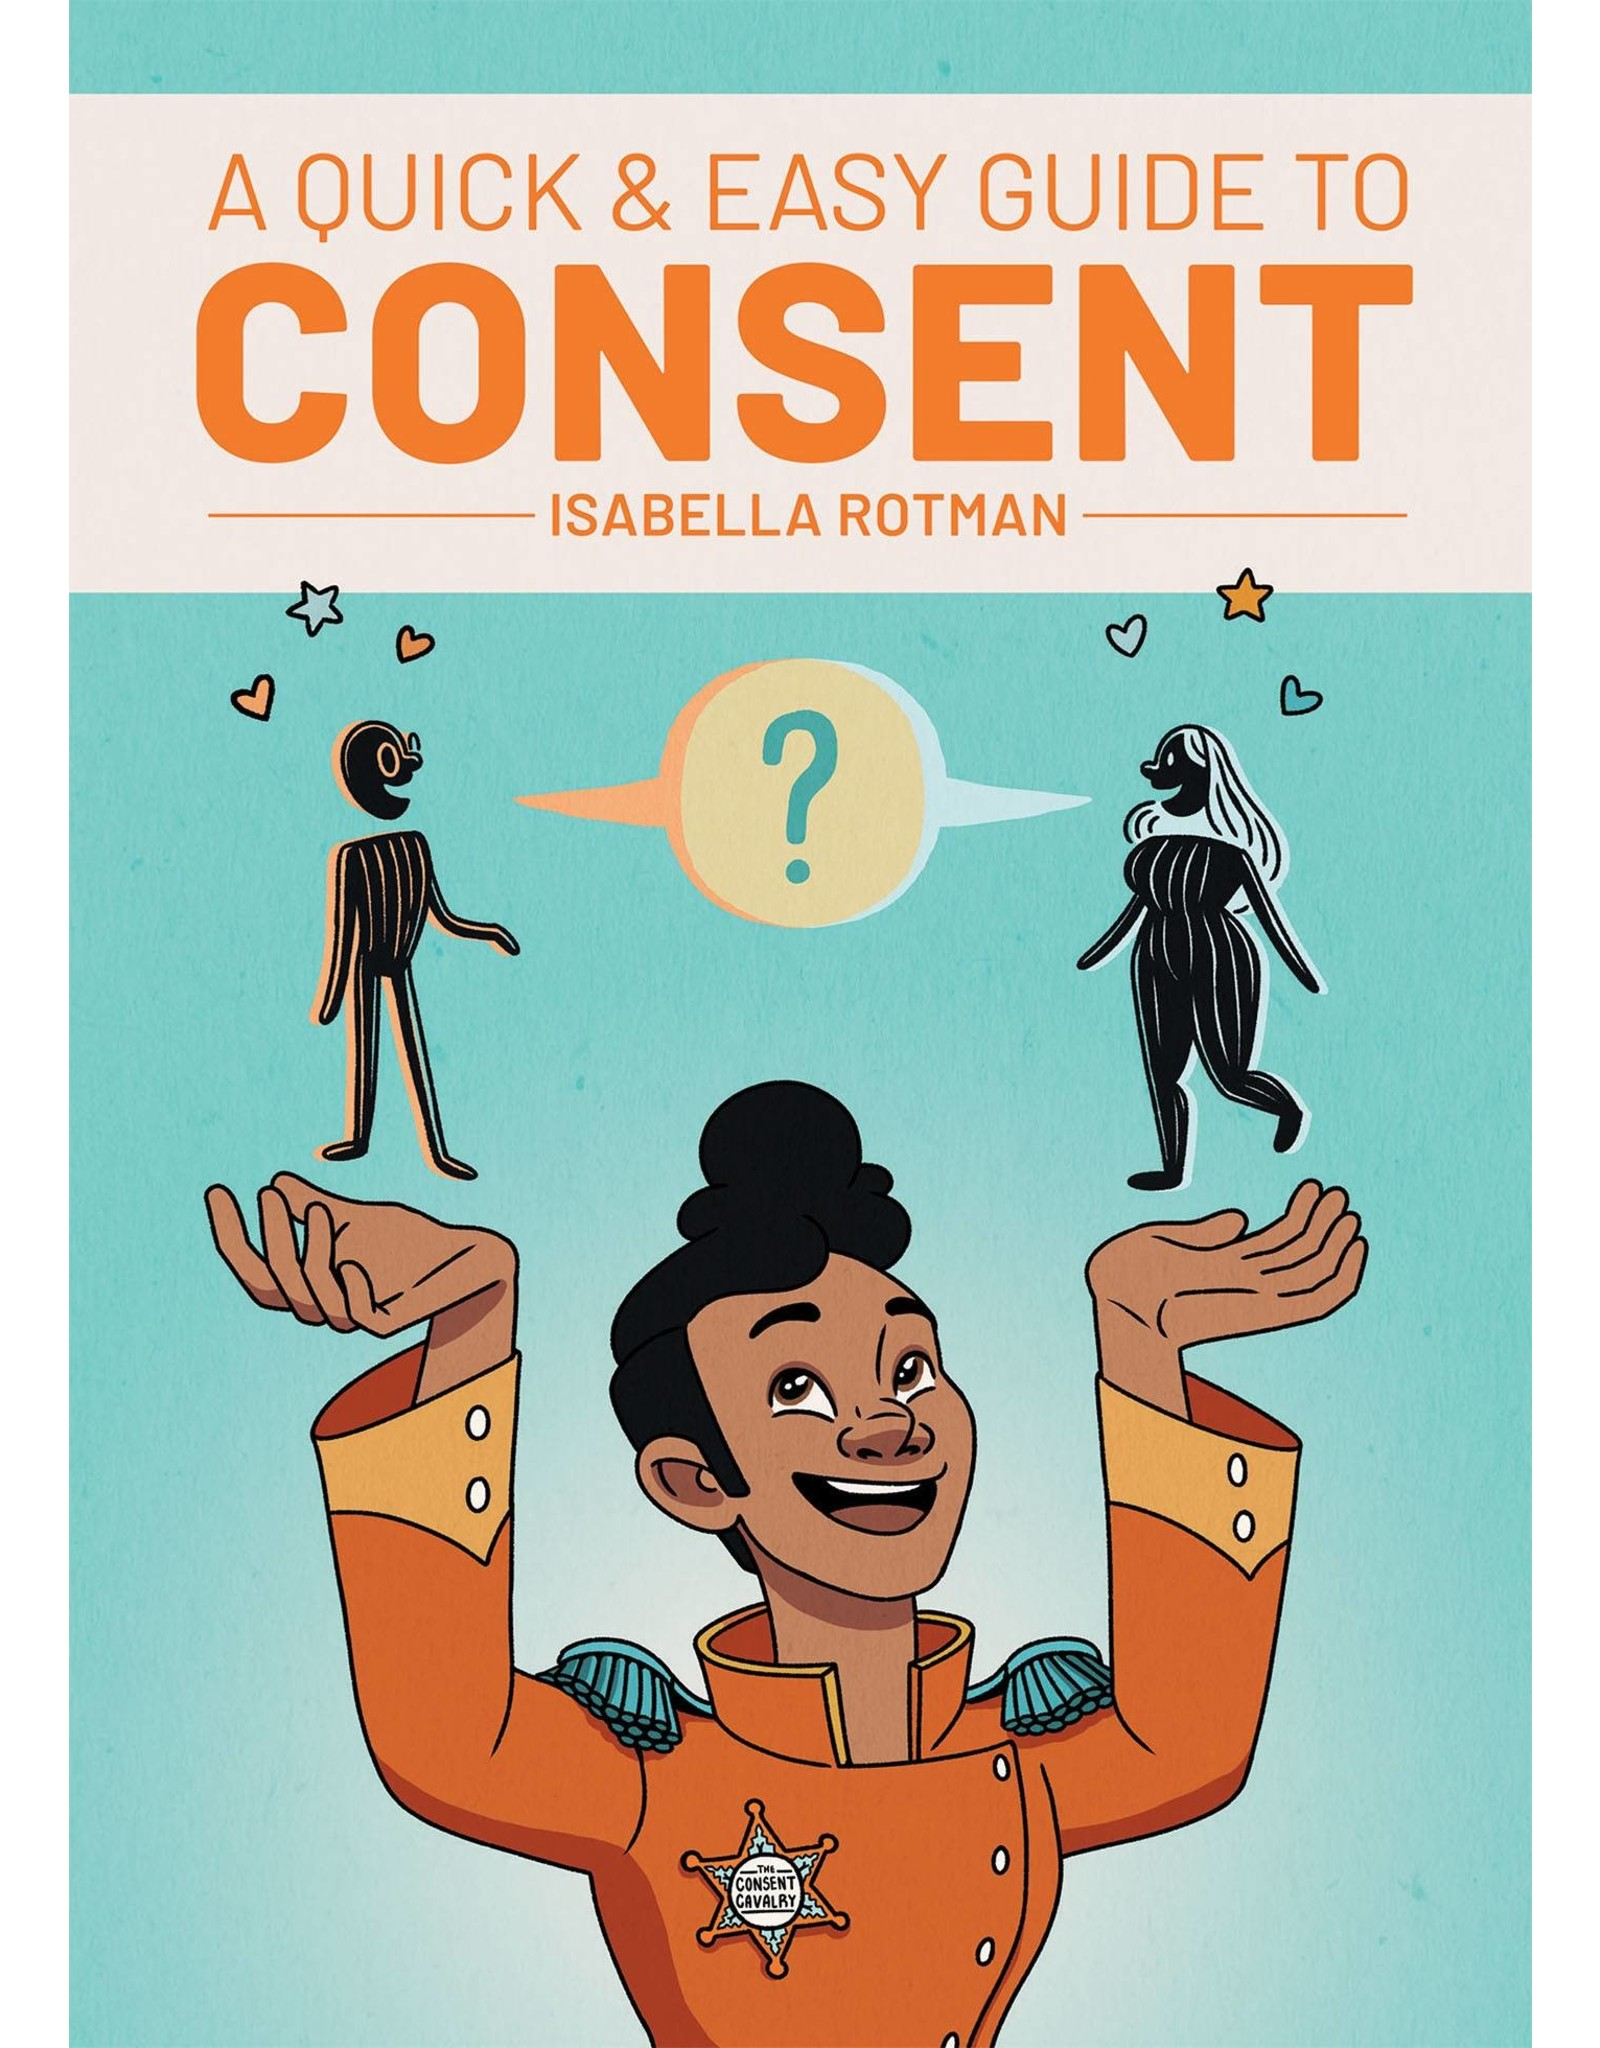 ONI PRESS INC. A QUICK & EASY GUIDE TO CONSENT TP